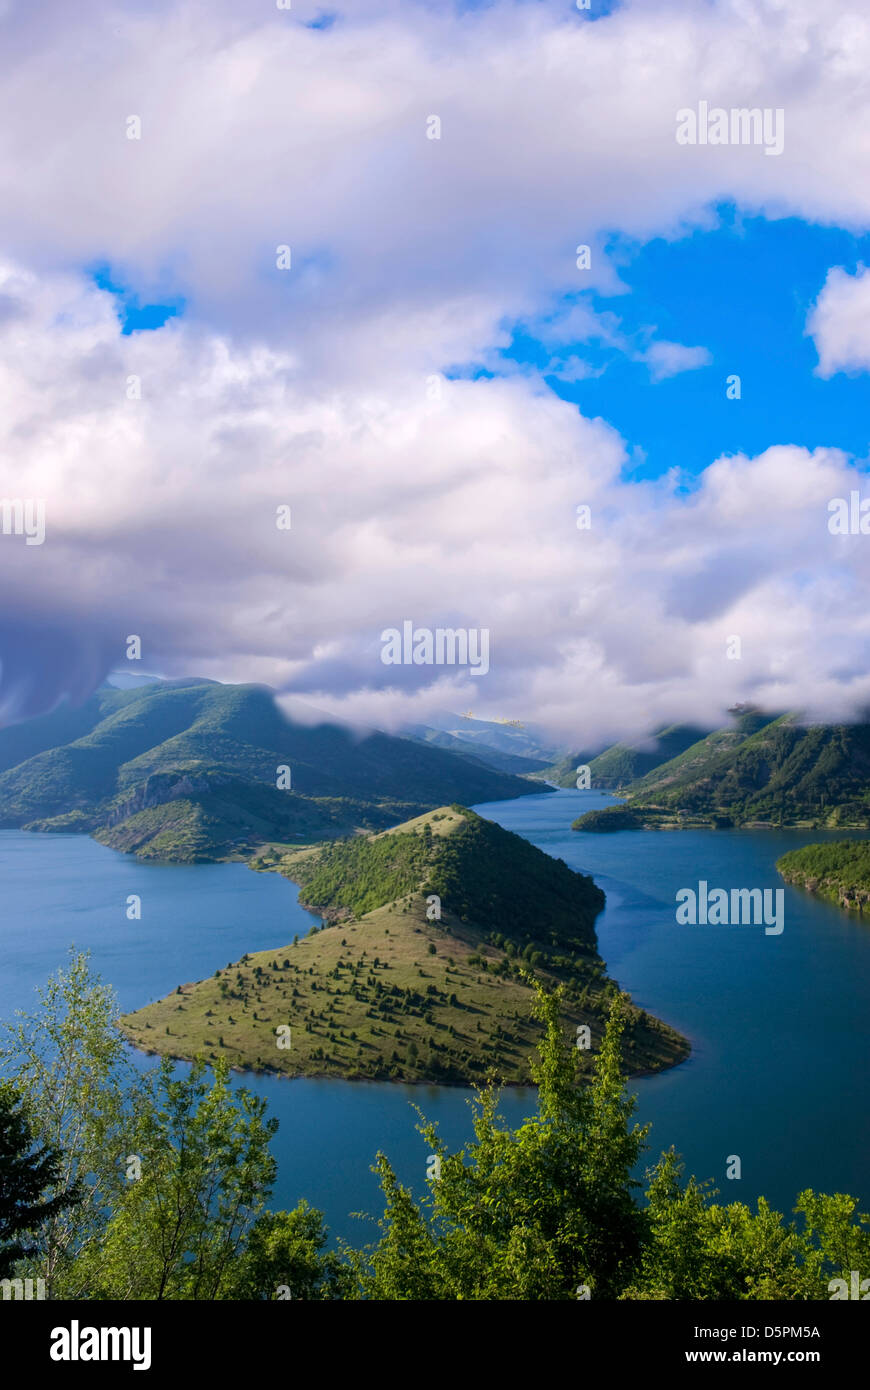 high view of Kardjali lake, Bulgaria in summer - Stock Image